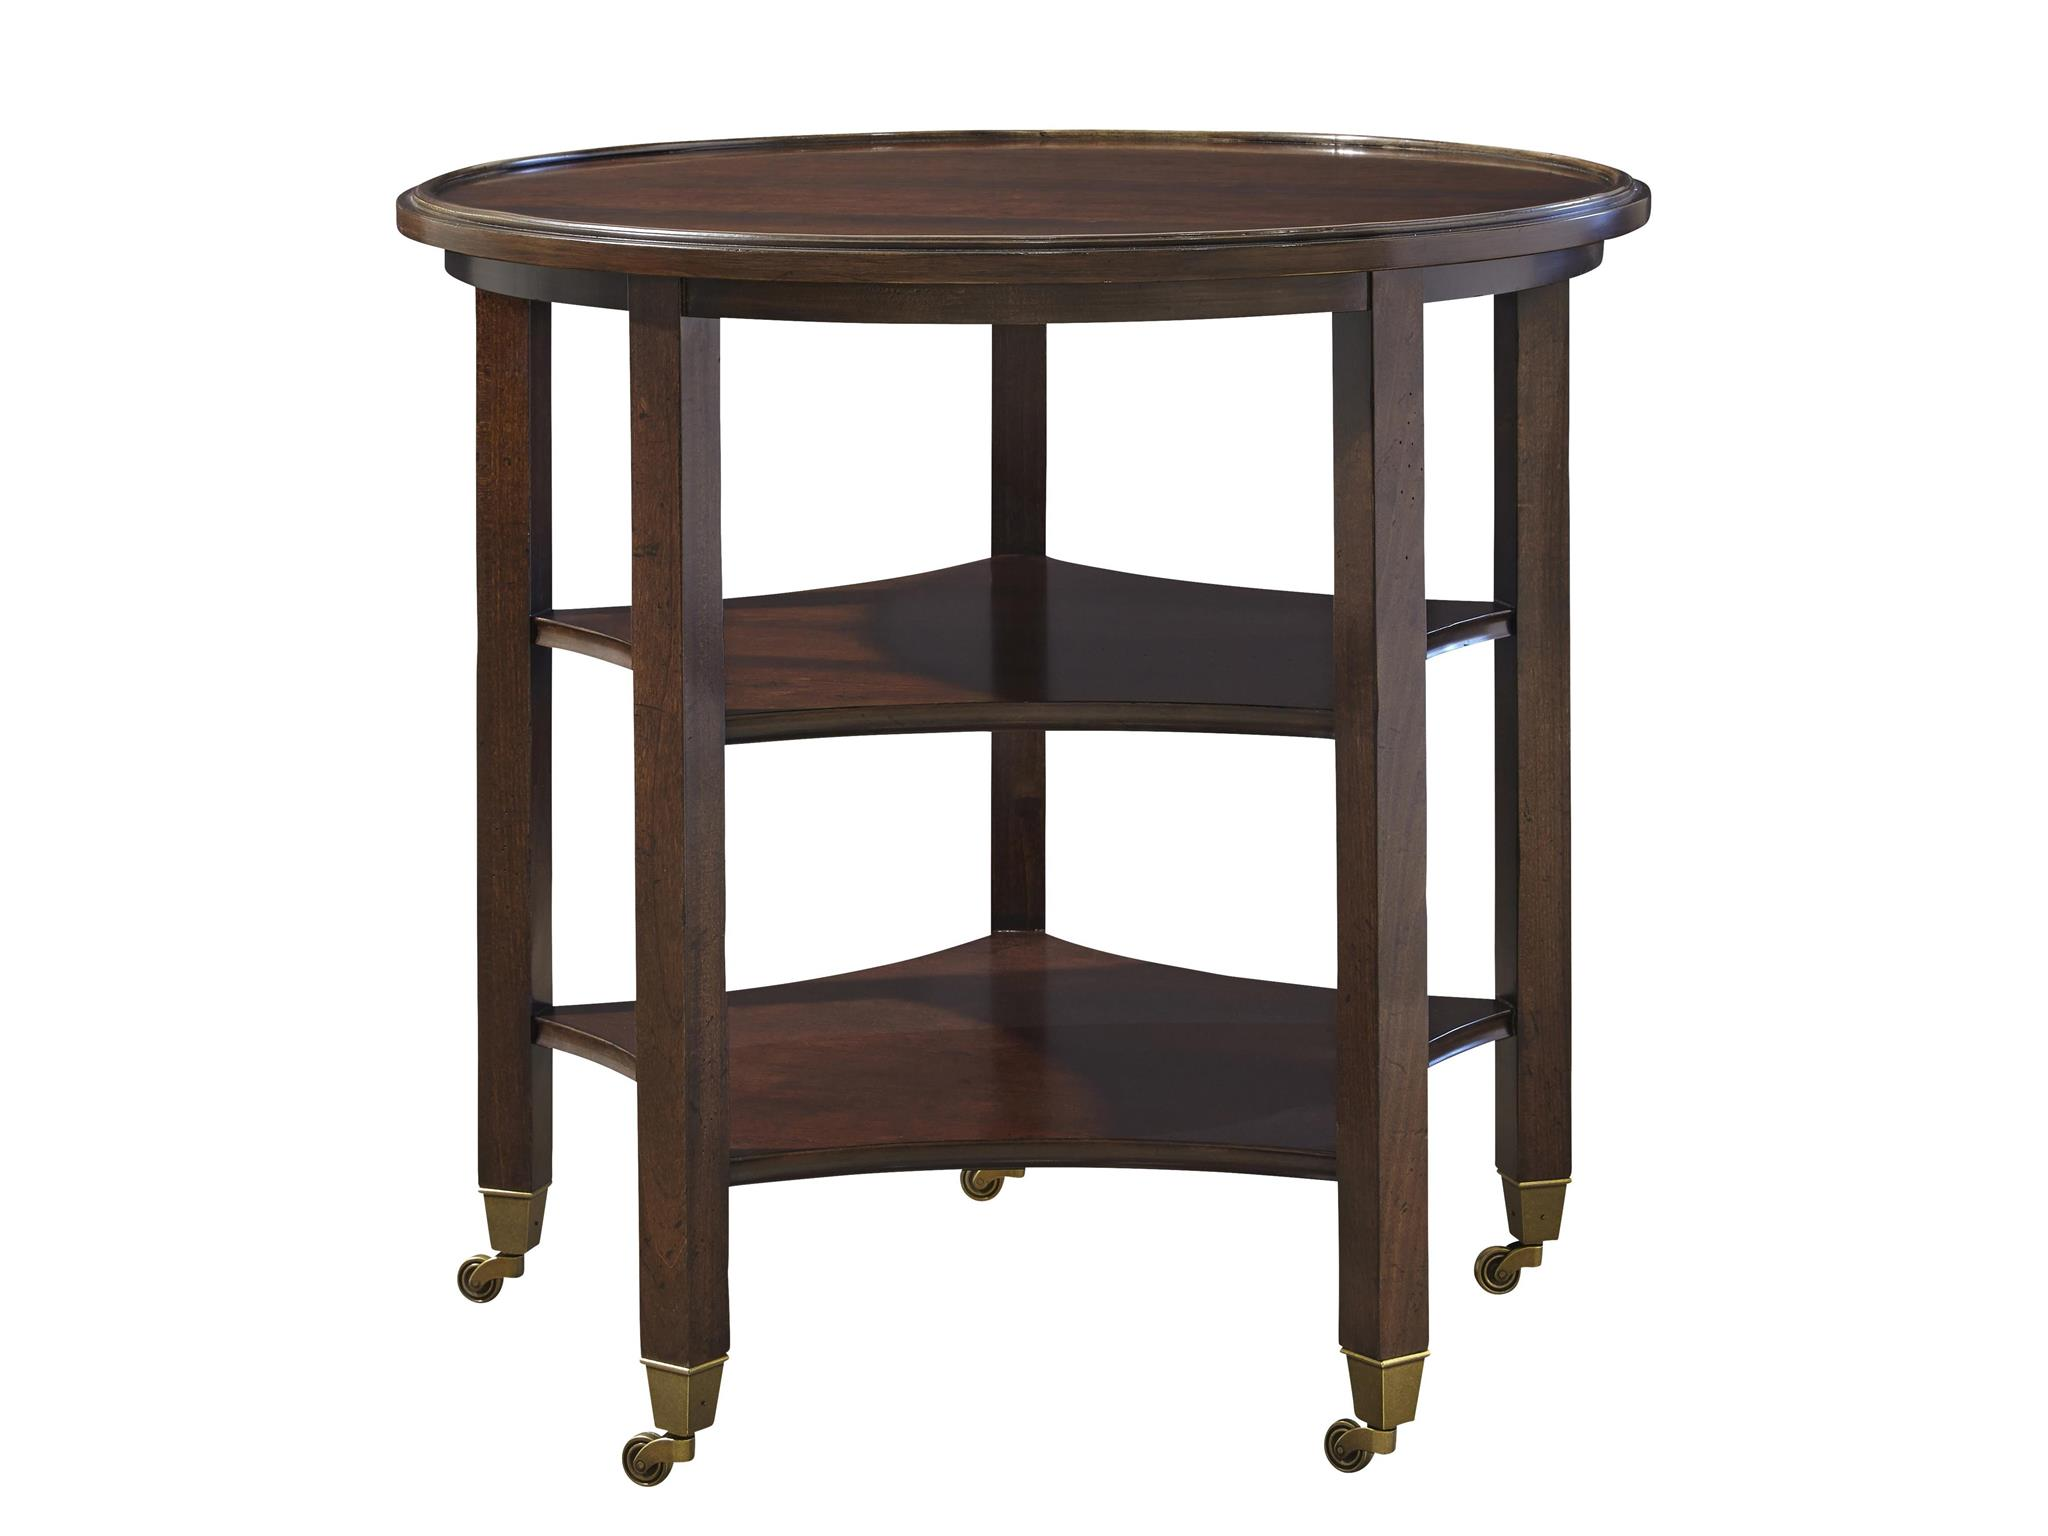 Universal Furniture To The Trade To The Trade Breton Round End Table